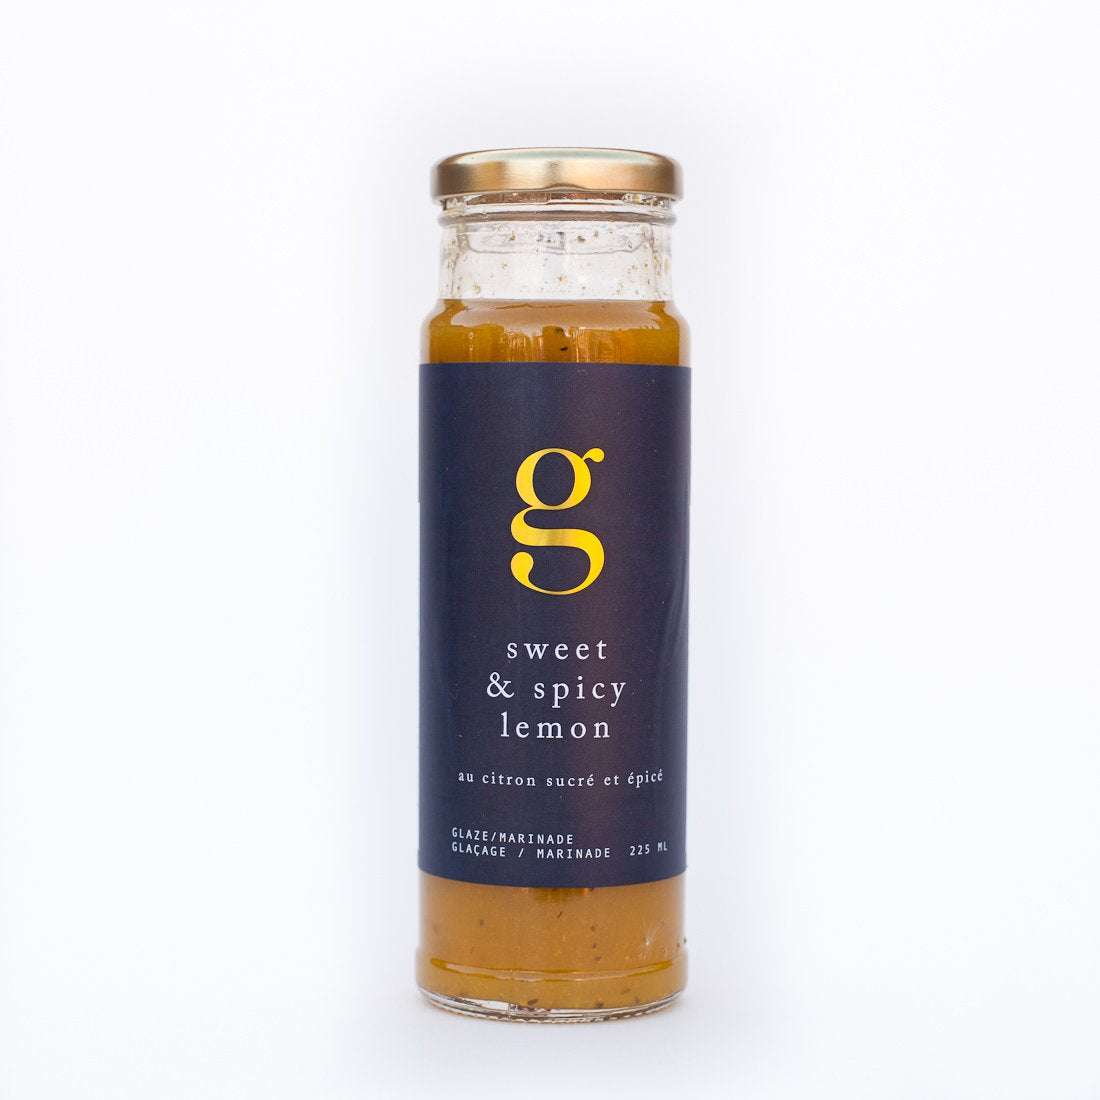 Gourmet Inspirations Sweet & Spicy Lemon Glaze/Marinade